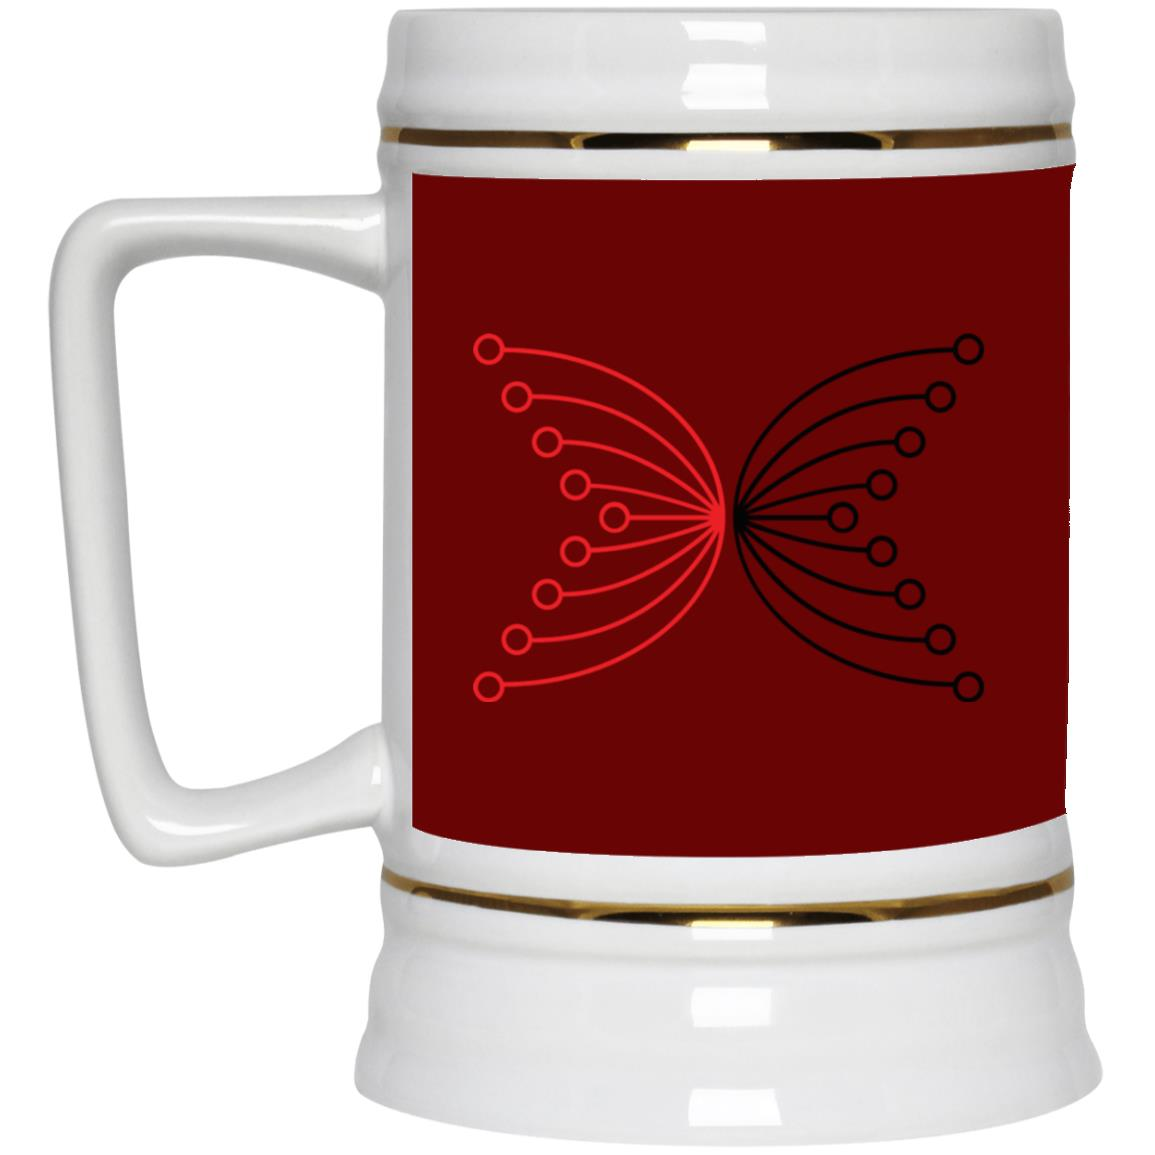 IOG Beer Stein 22oz.